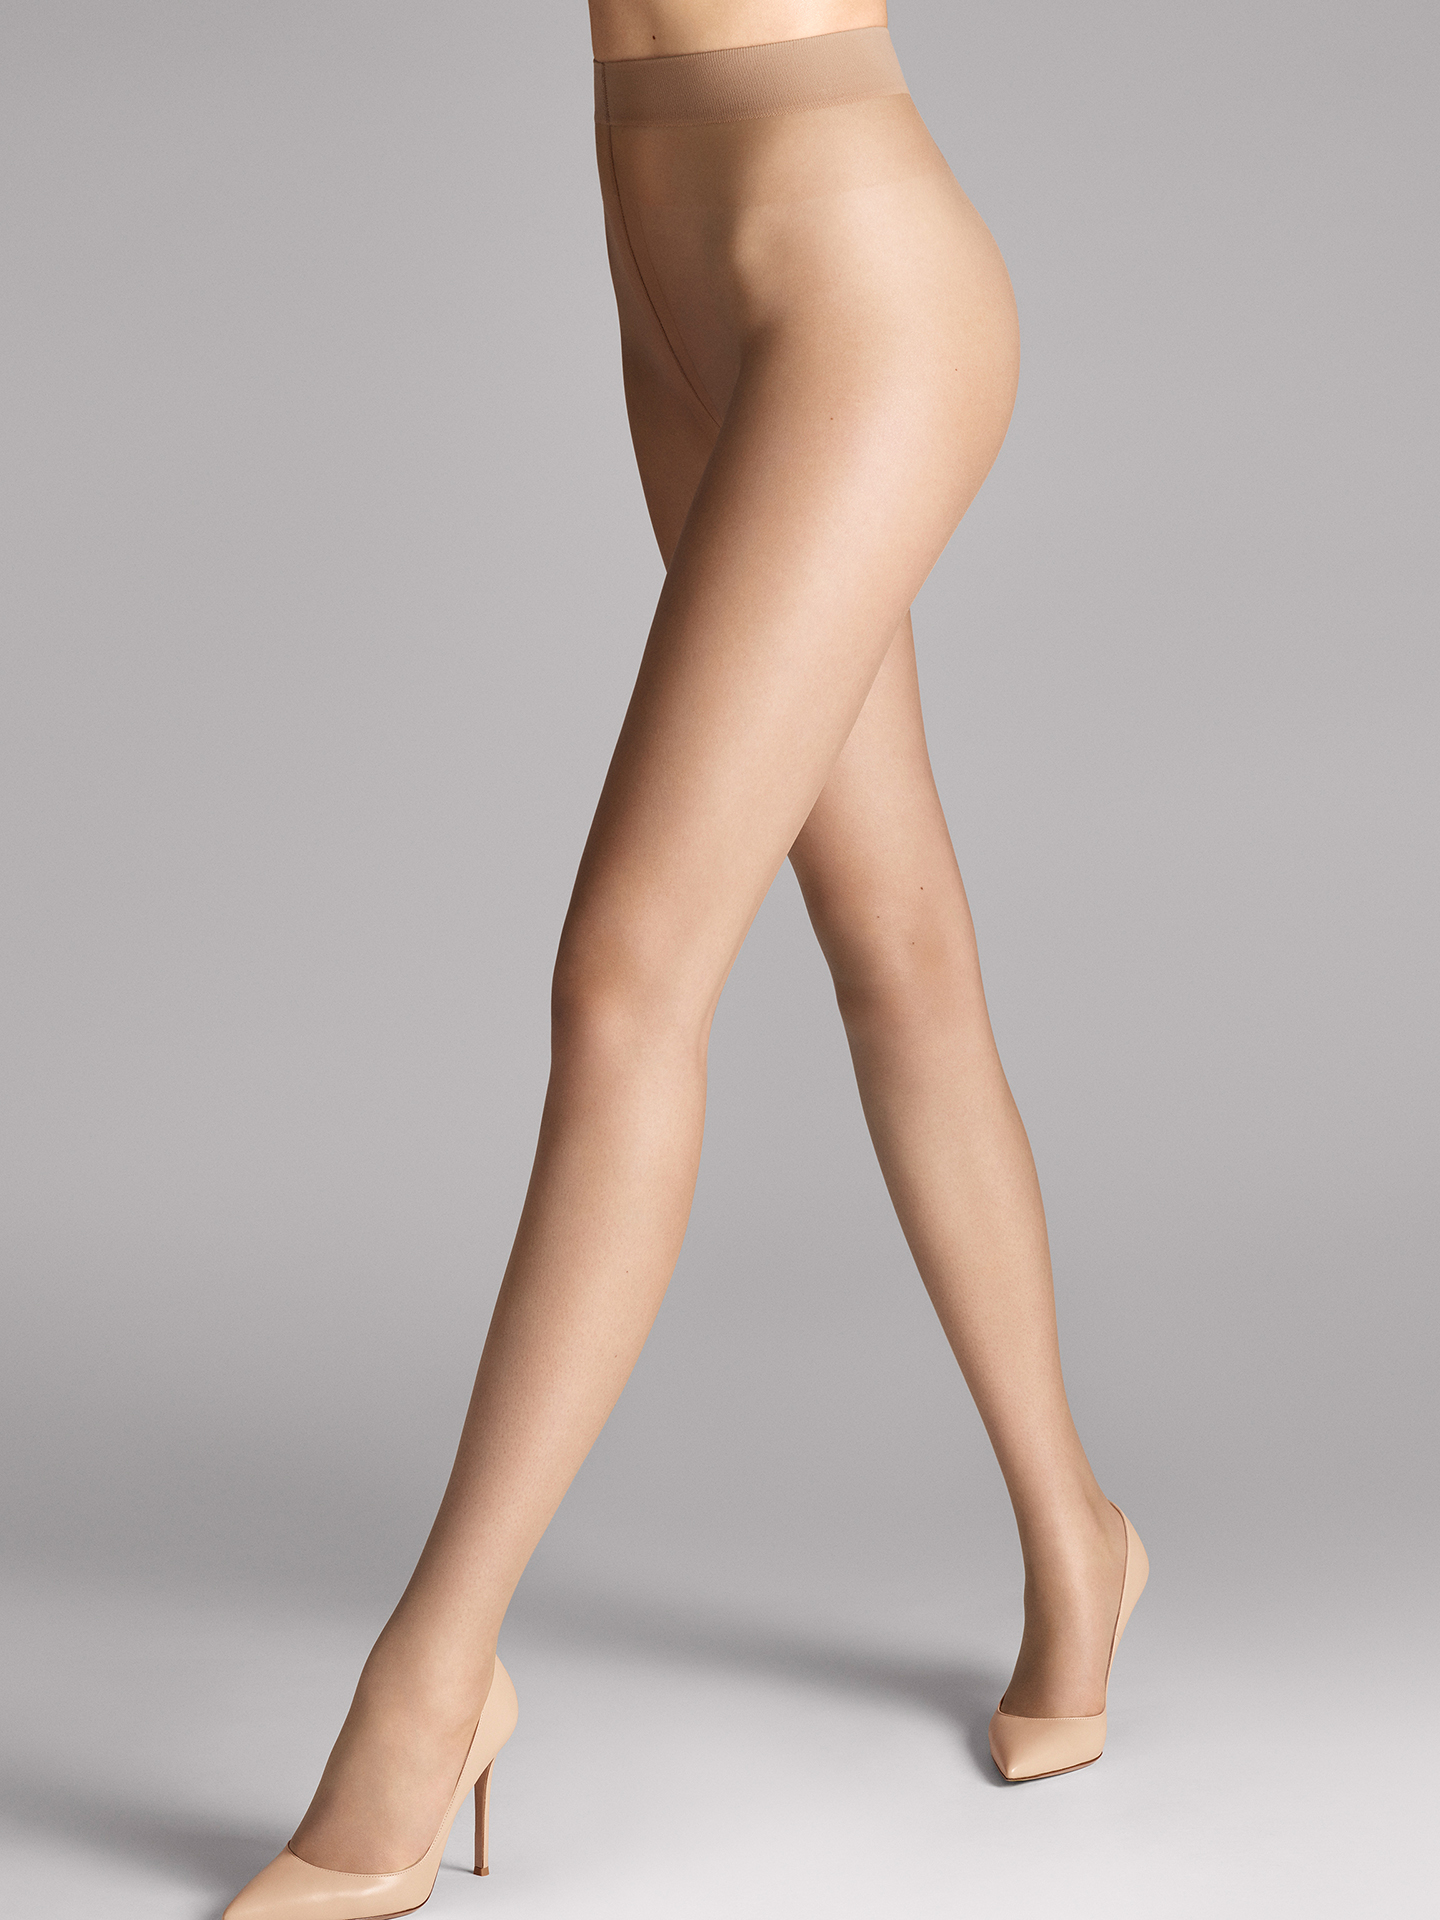 Nude 8 Tights - 4273 - XS | Sportbekleidung > Sporthosen > Tights | Wolford